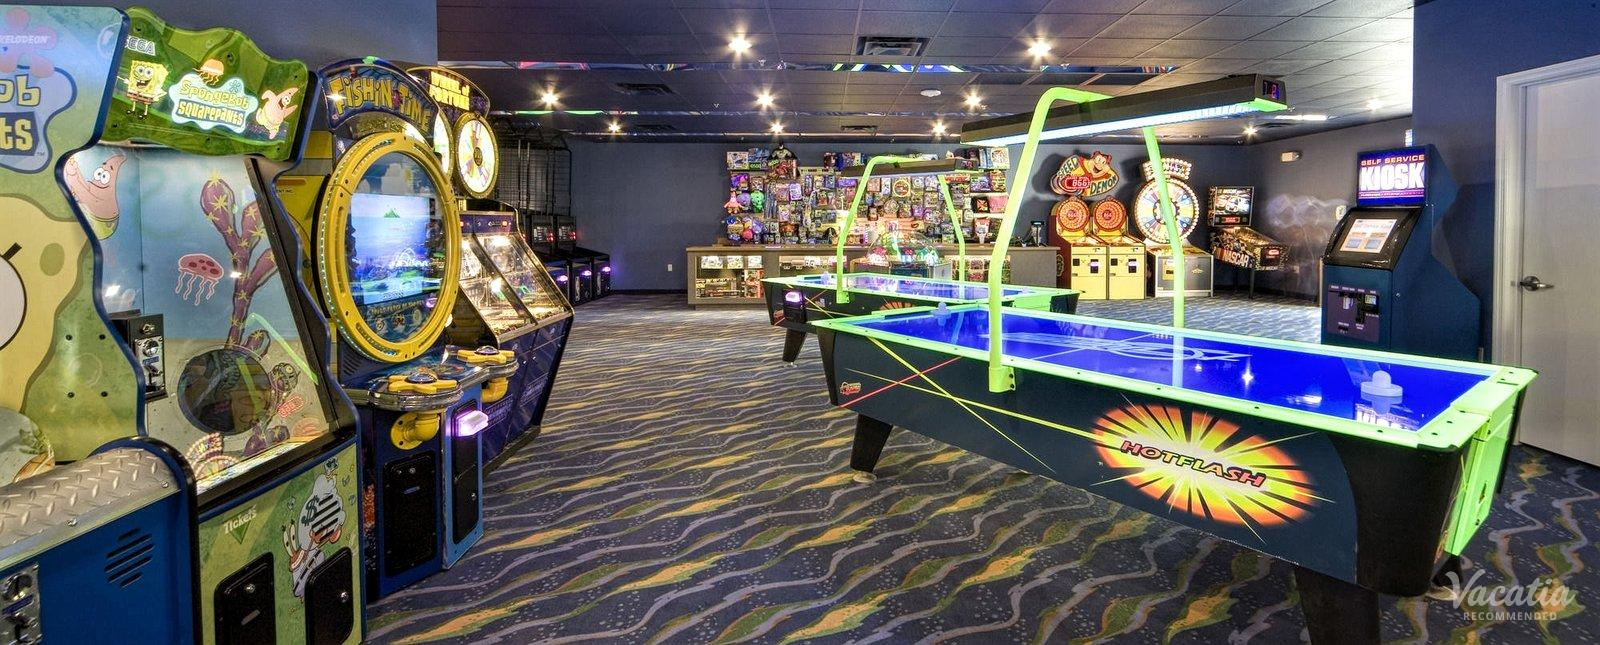 Orange Lake Resort video game arcade